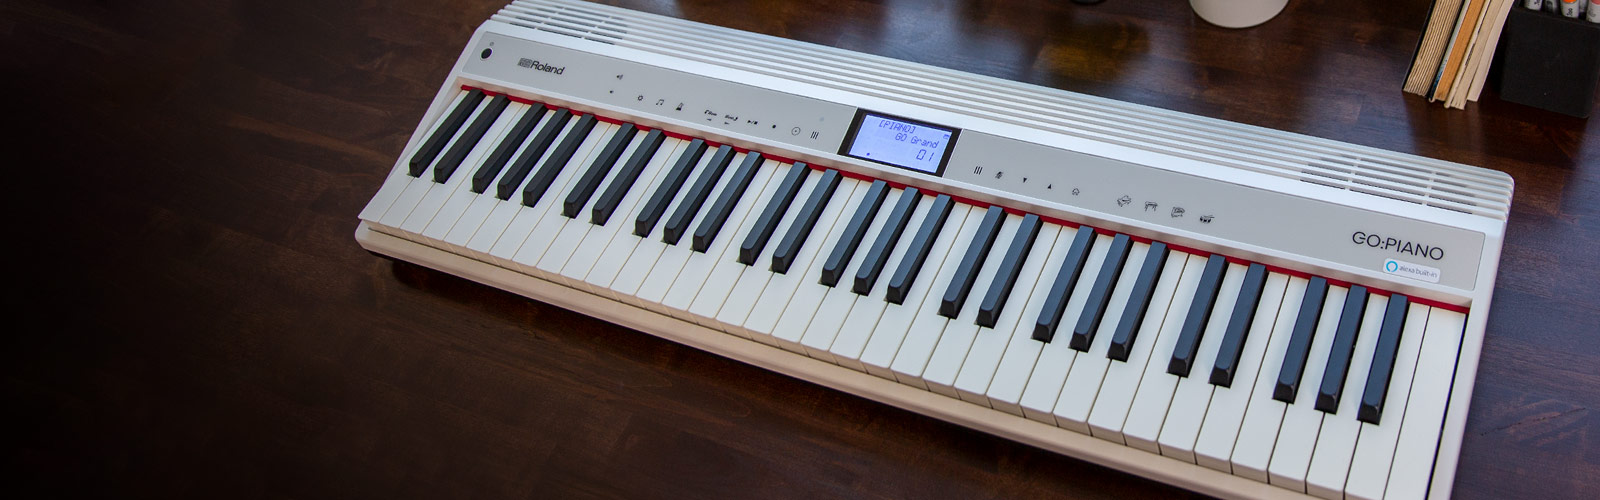 GO:PIANO with Alexa Built-in